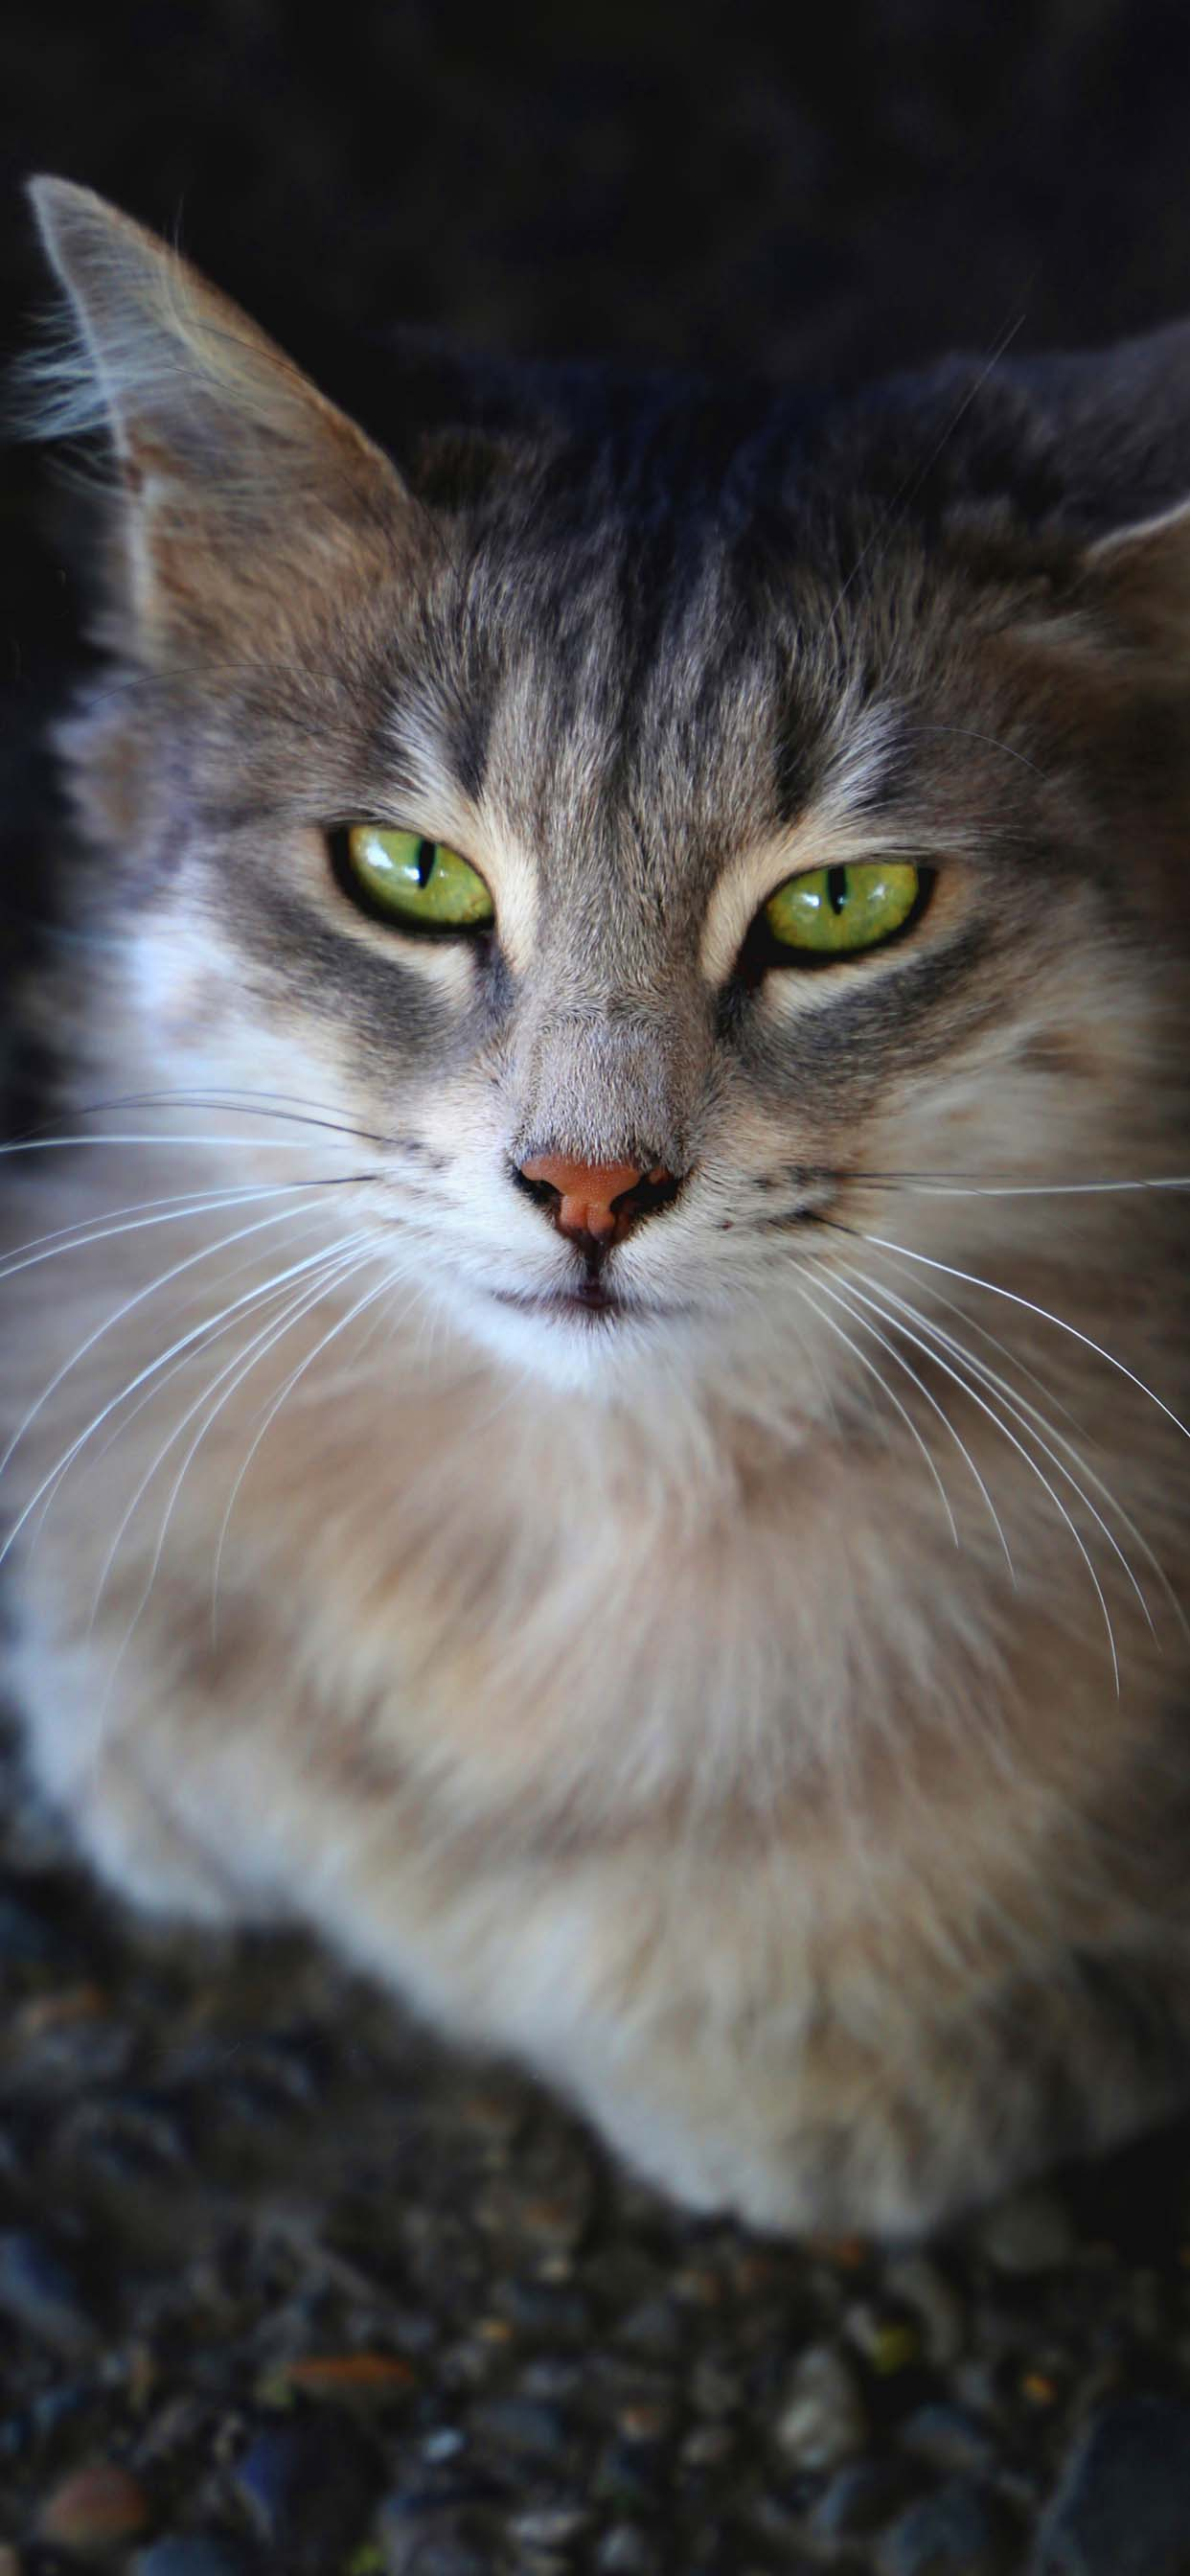 Amazing Cat With Green Eyes - Wallpaper For iPhone